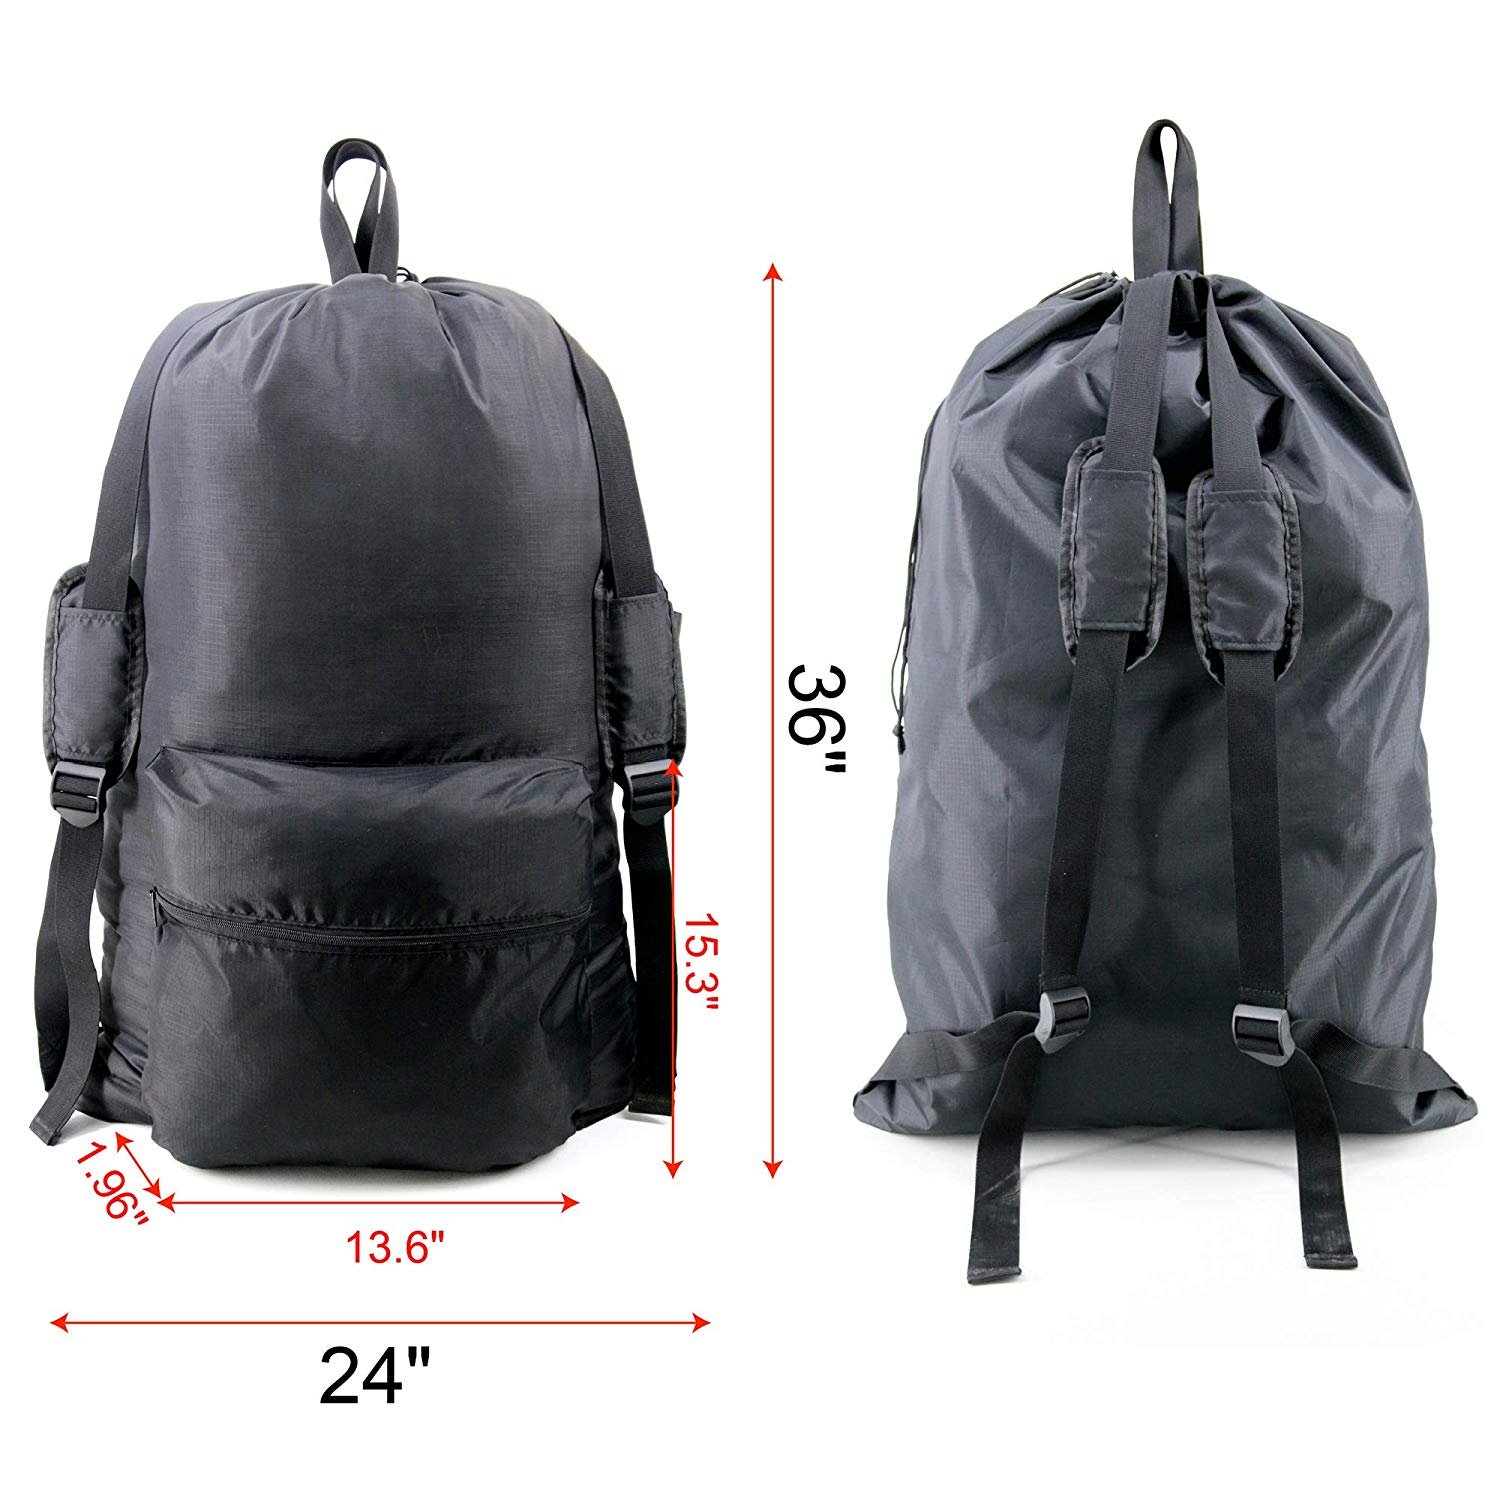 A backpack designed to carry laundry.